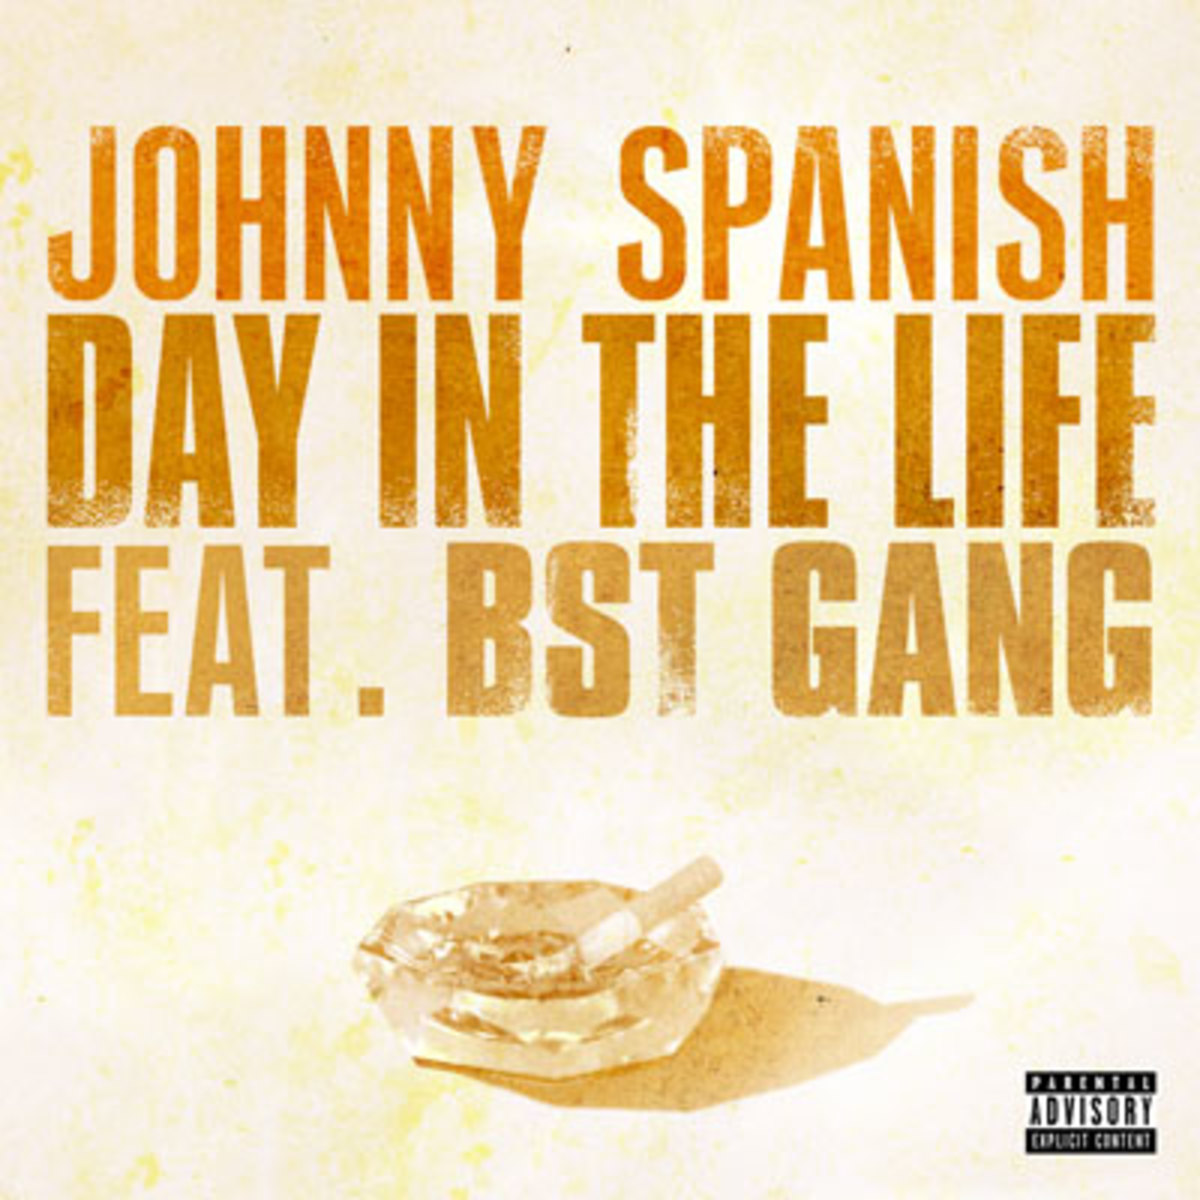 johnnyspanish-dayinthelife.jpg